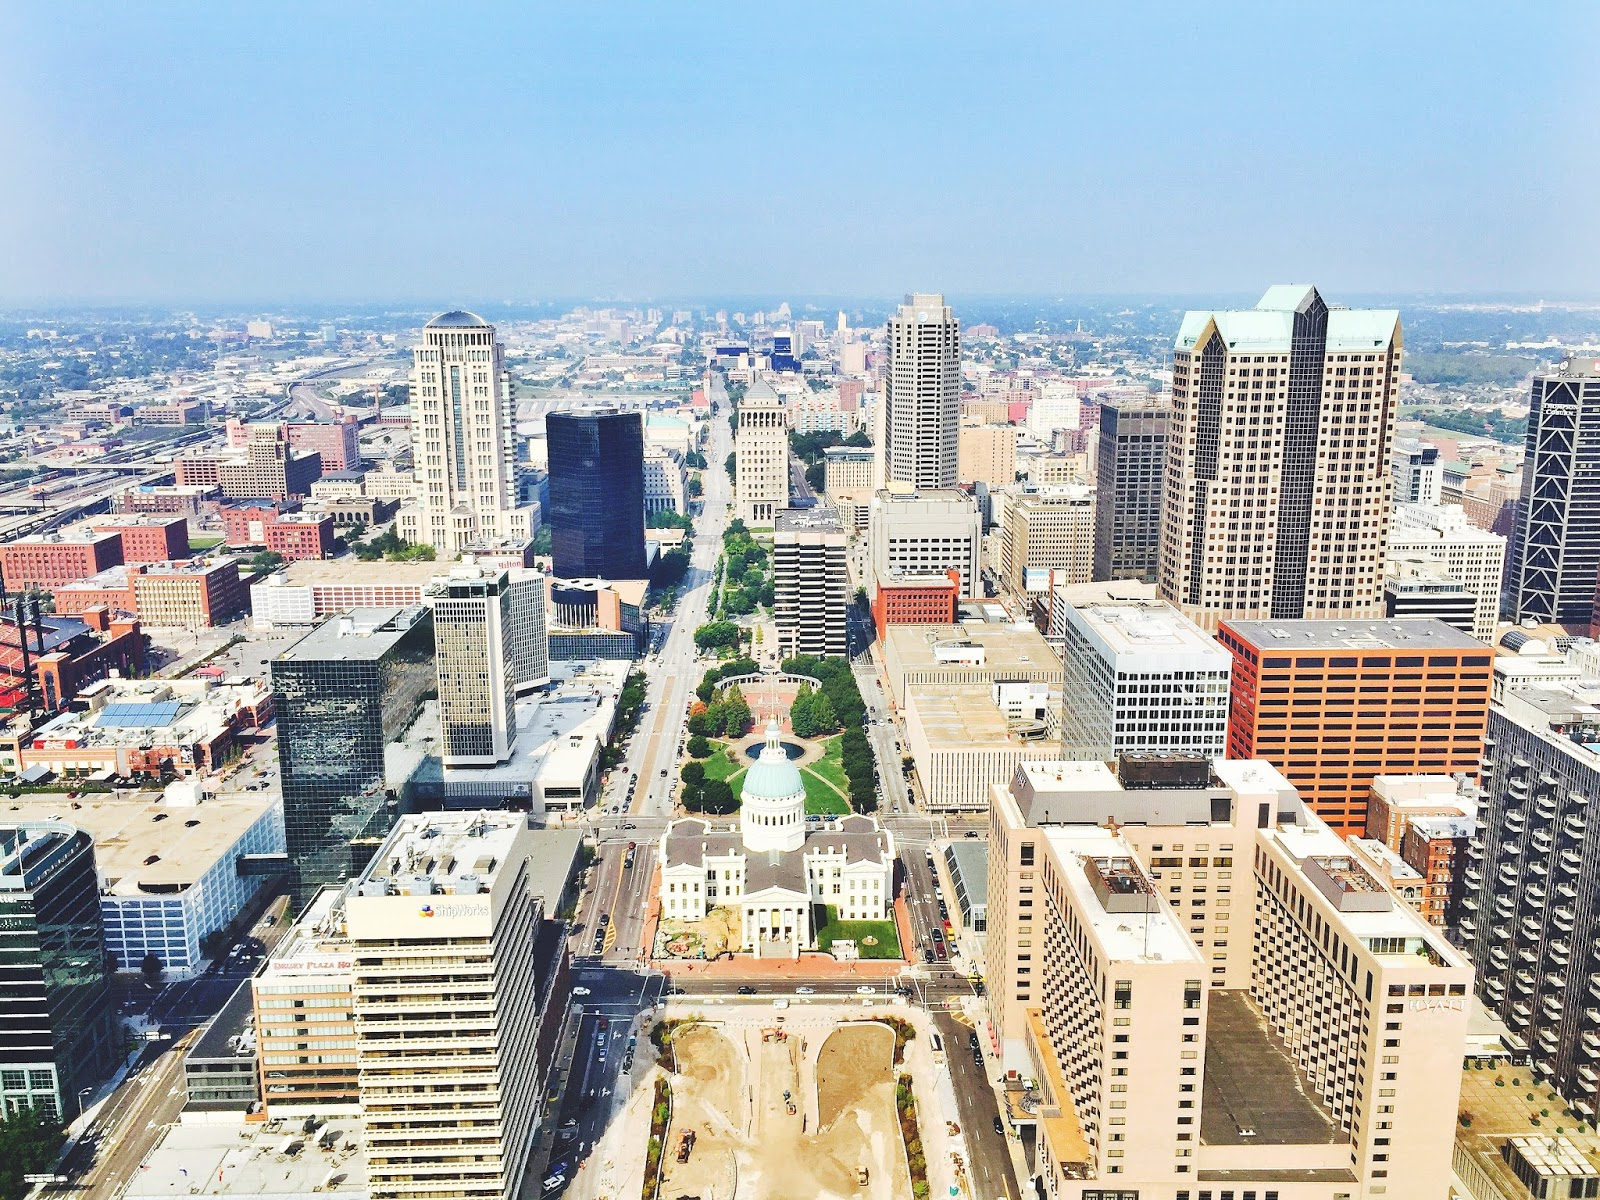 View of St. Louis from the Arch